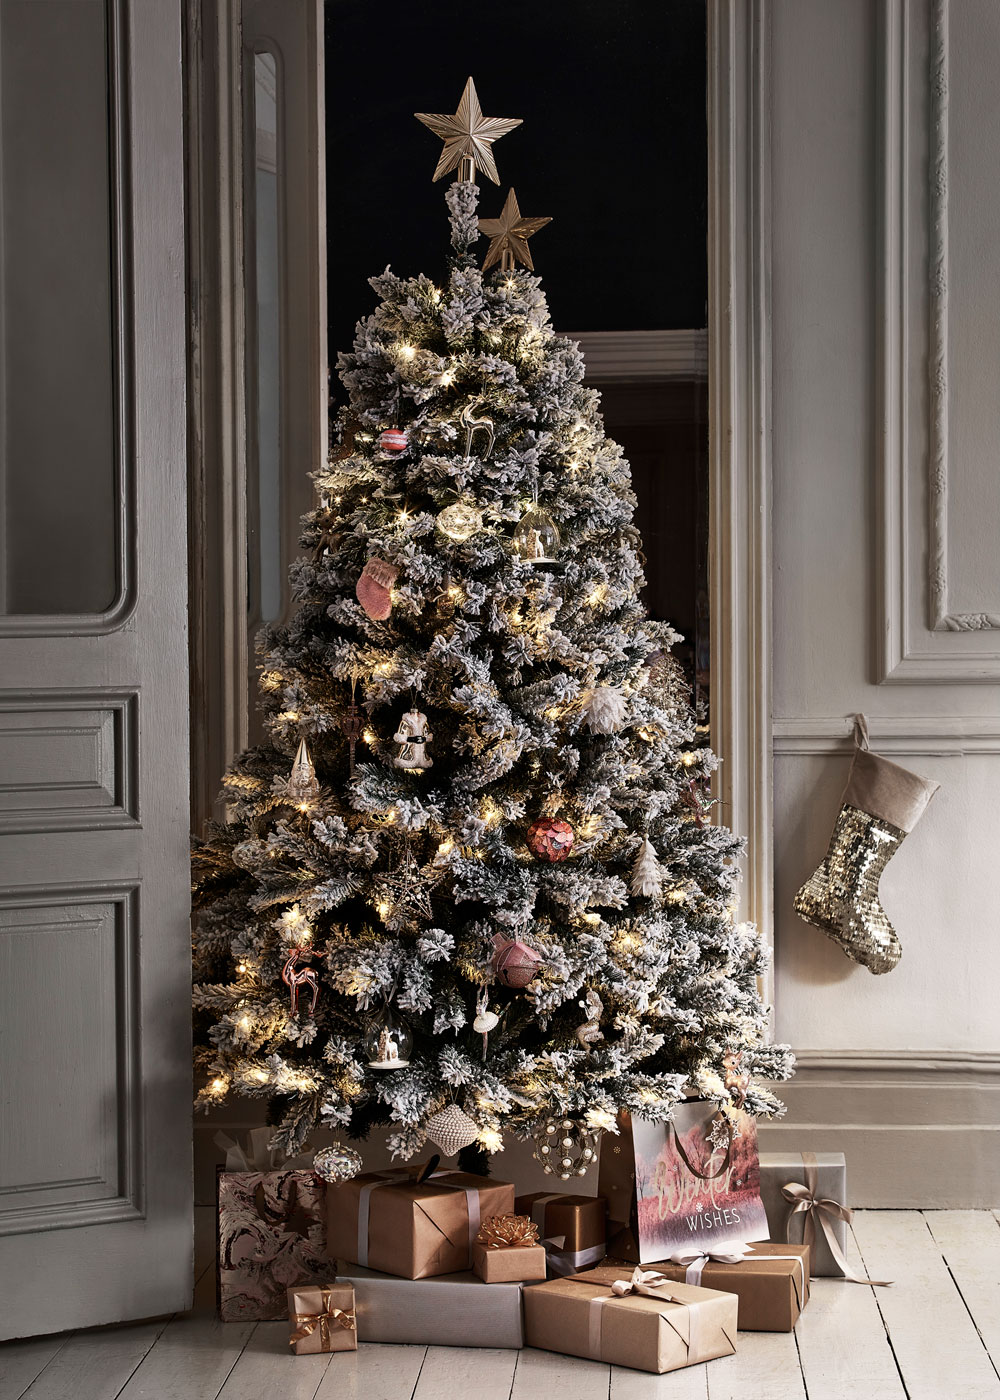 Best Places For Budget Christmas Decorations - Apartment ...